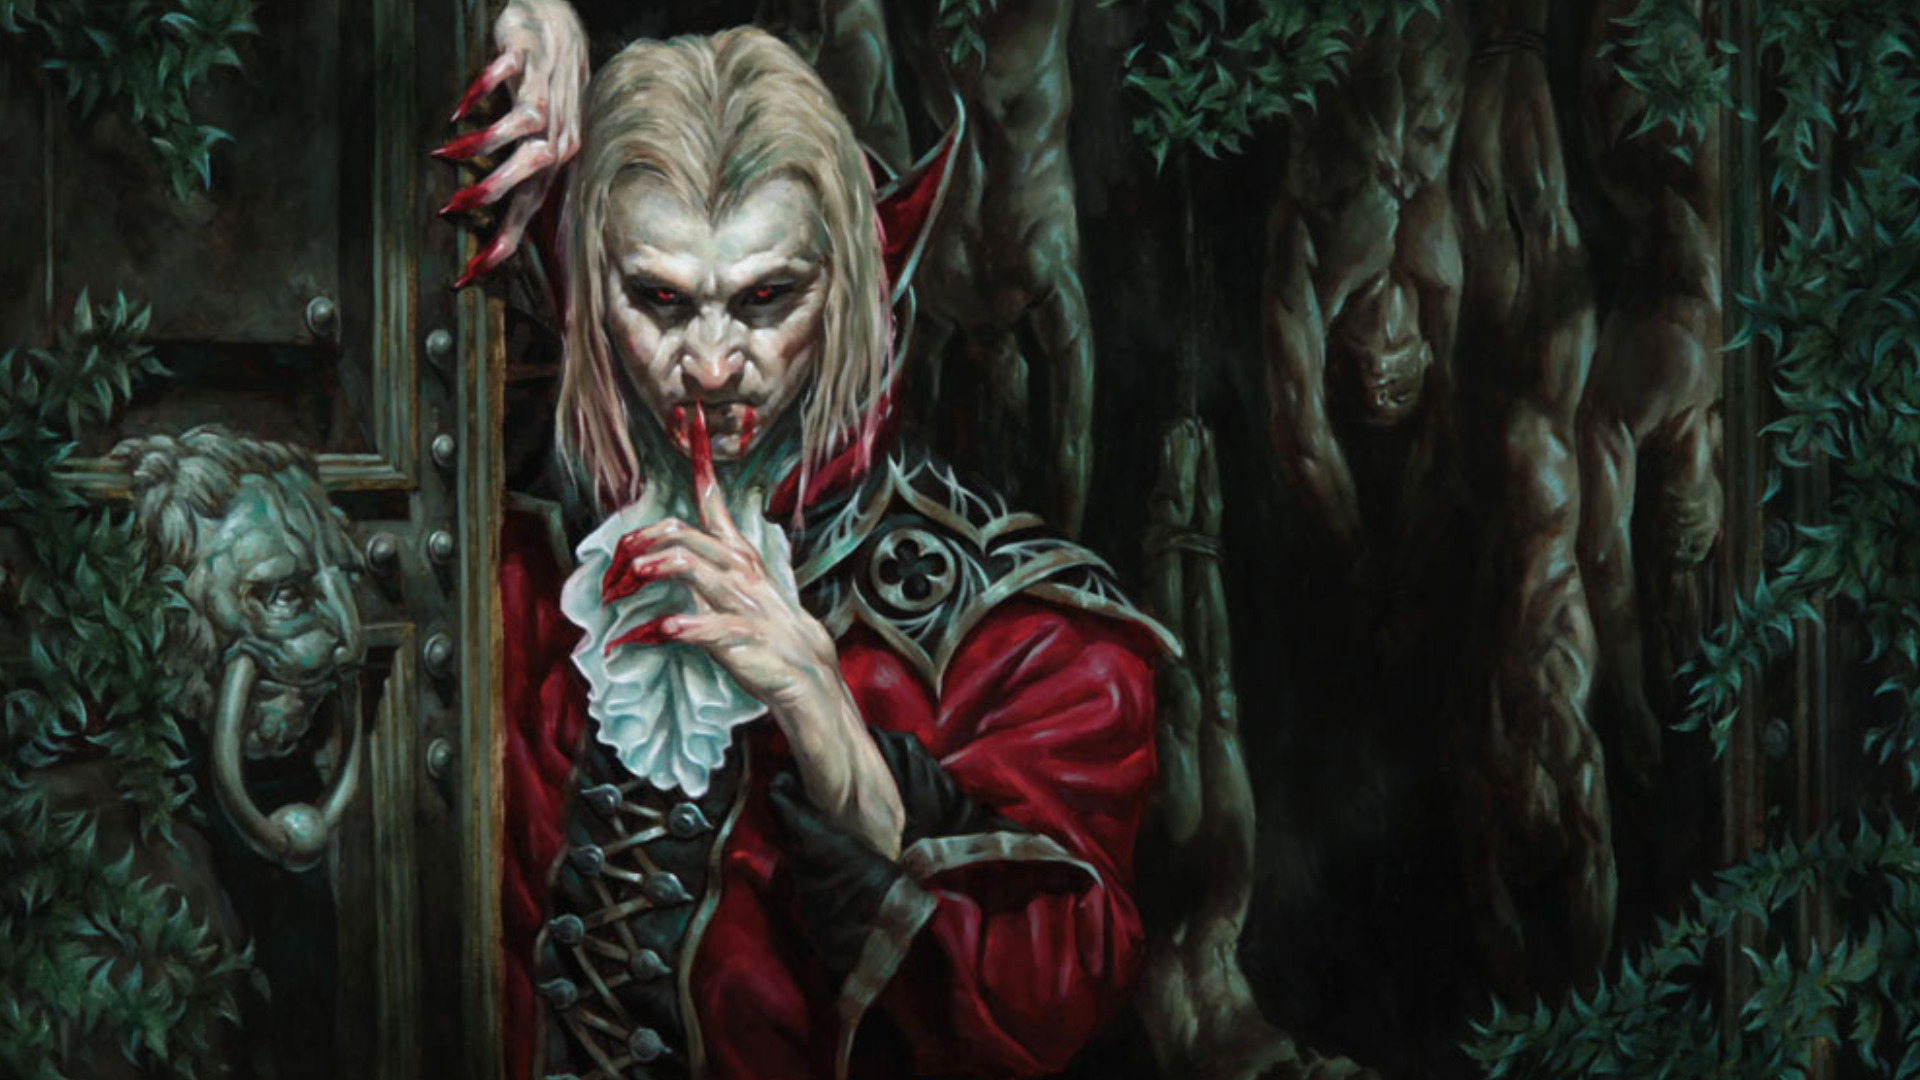 Vampire full hd wallpaper and background image 1920x1080 id275923 fantasy vampire wallpaper voltagebd Image collections